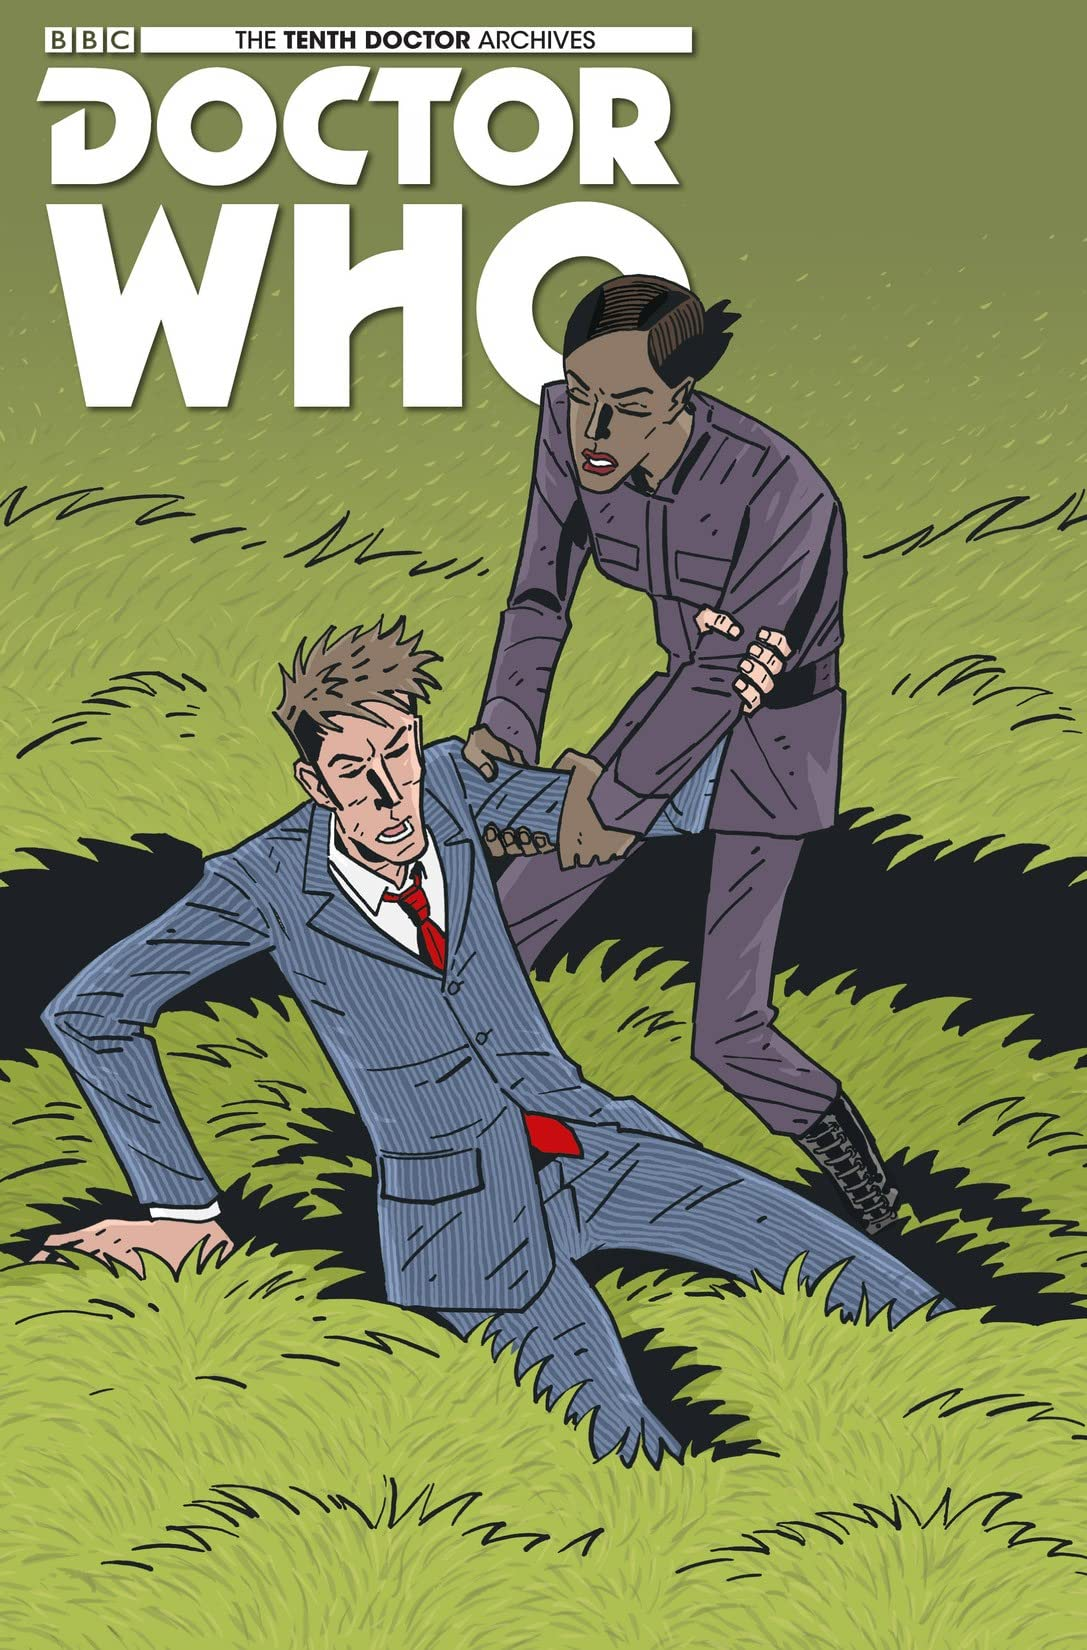 Doctor Who: The Tenth Doctor Archives #28